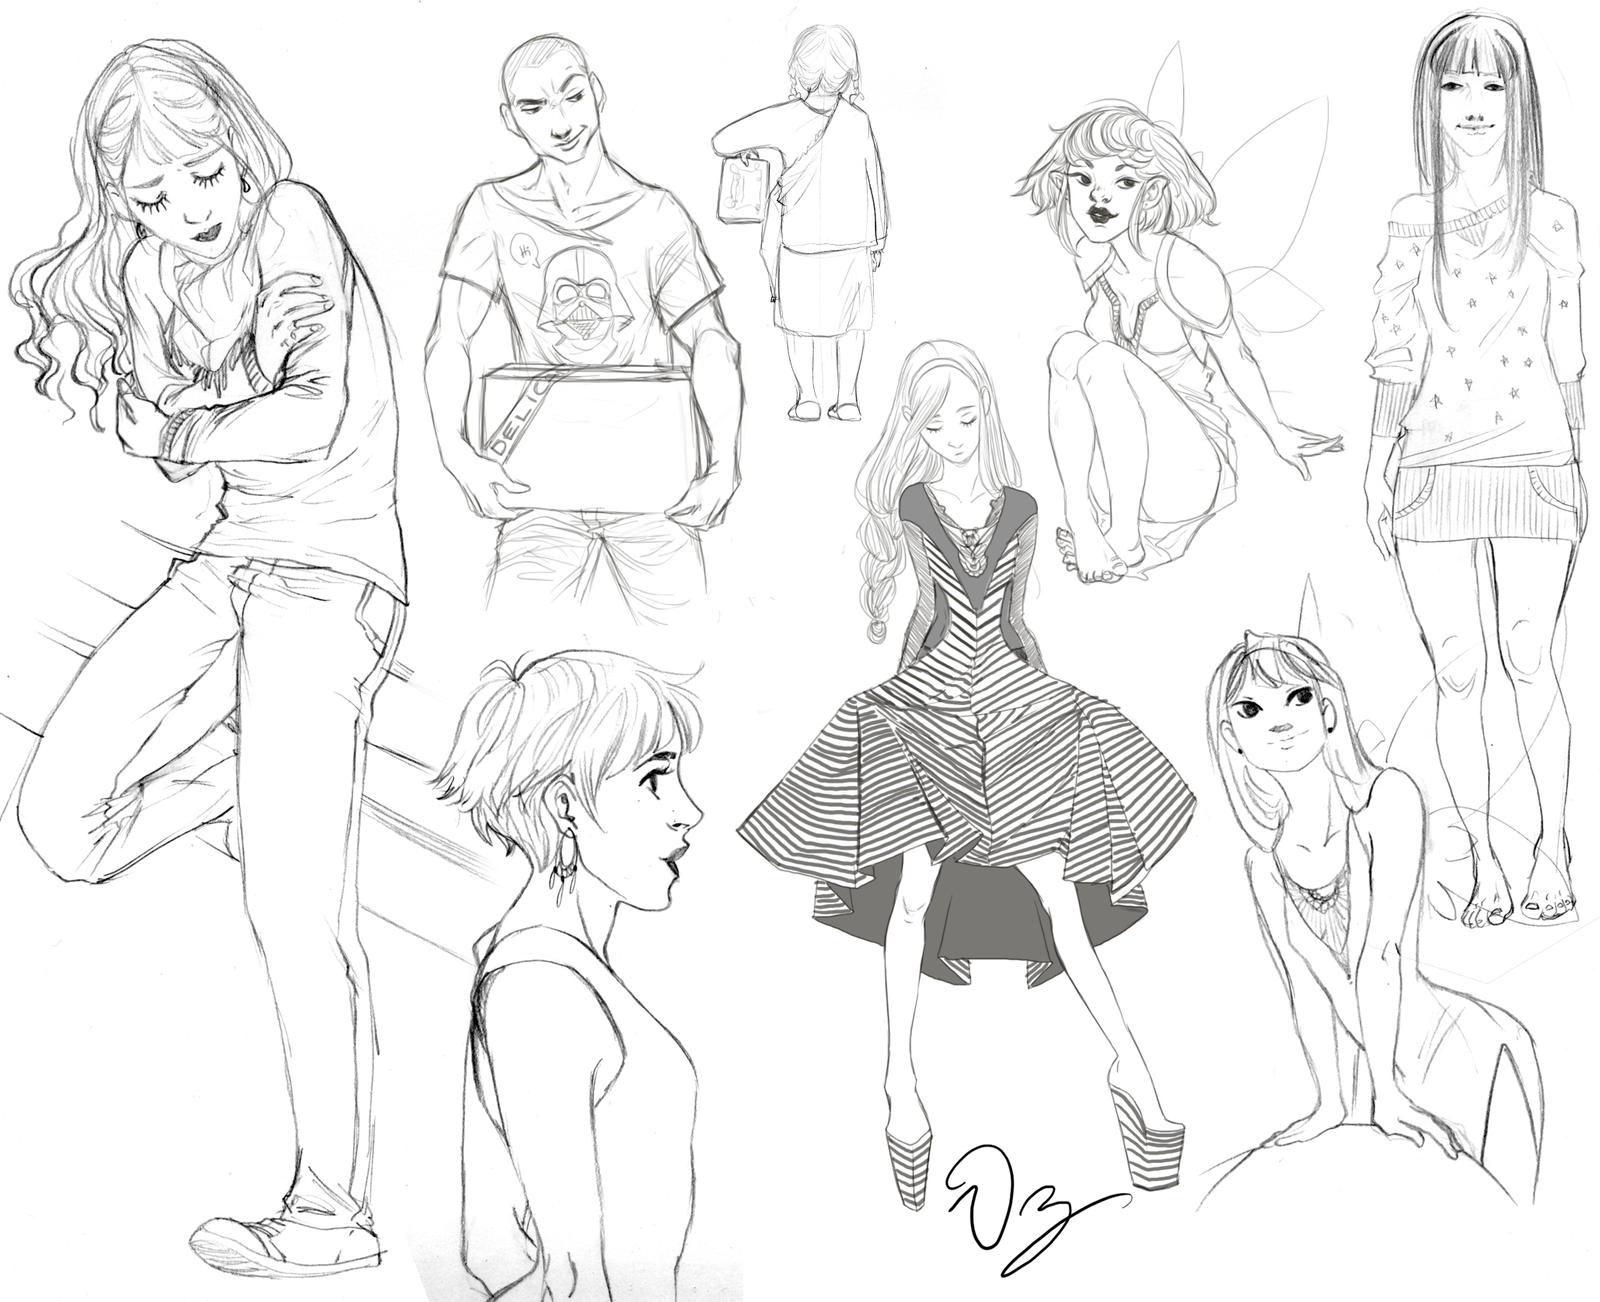 Sketchiiie Sketches by palnk